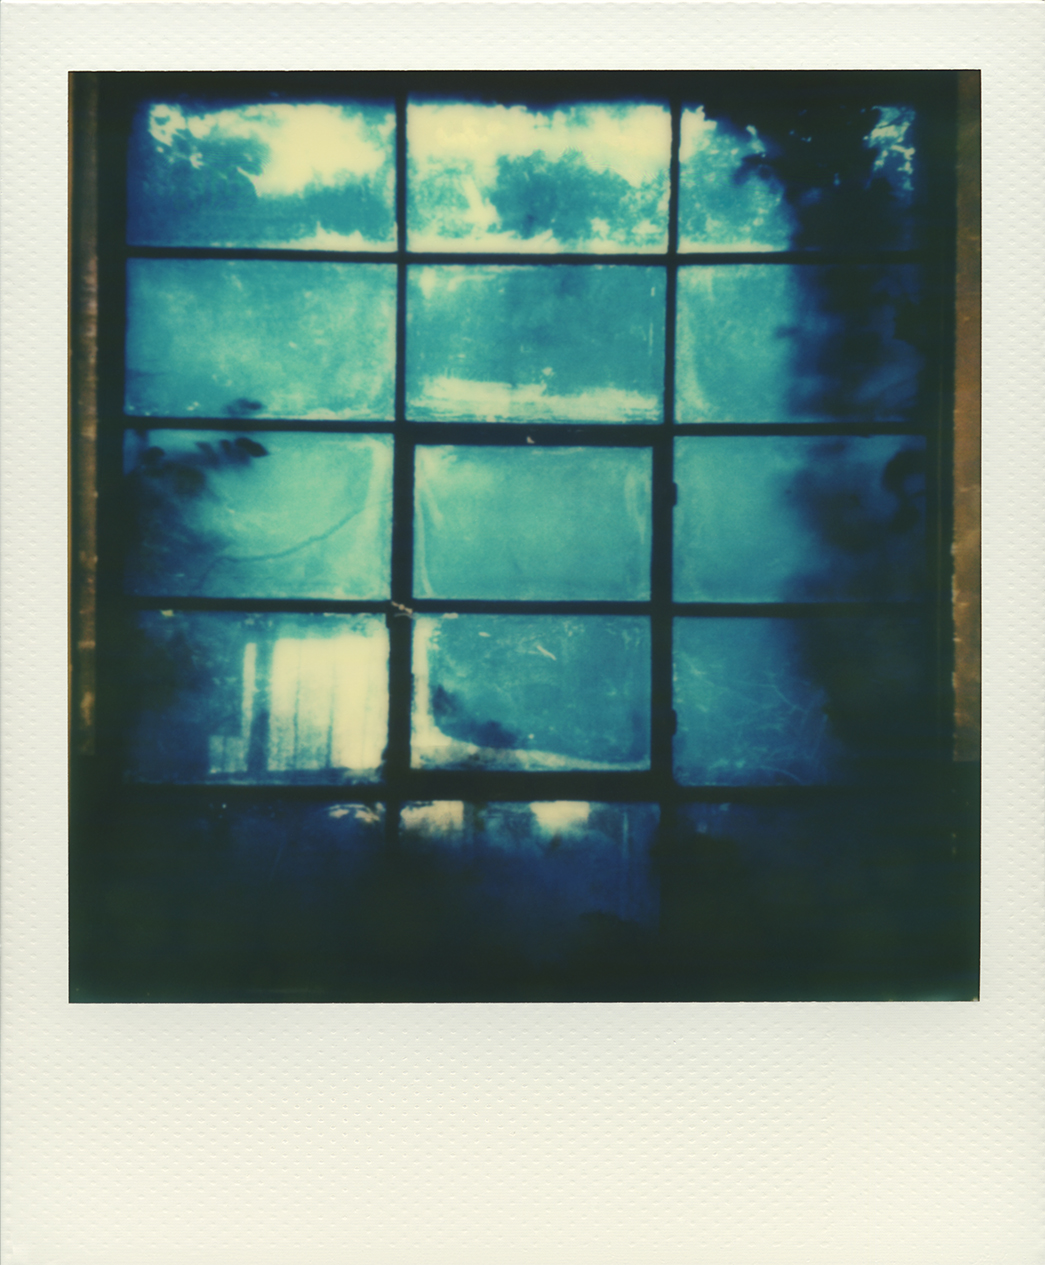 Pola windows 07